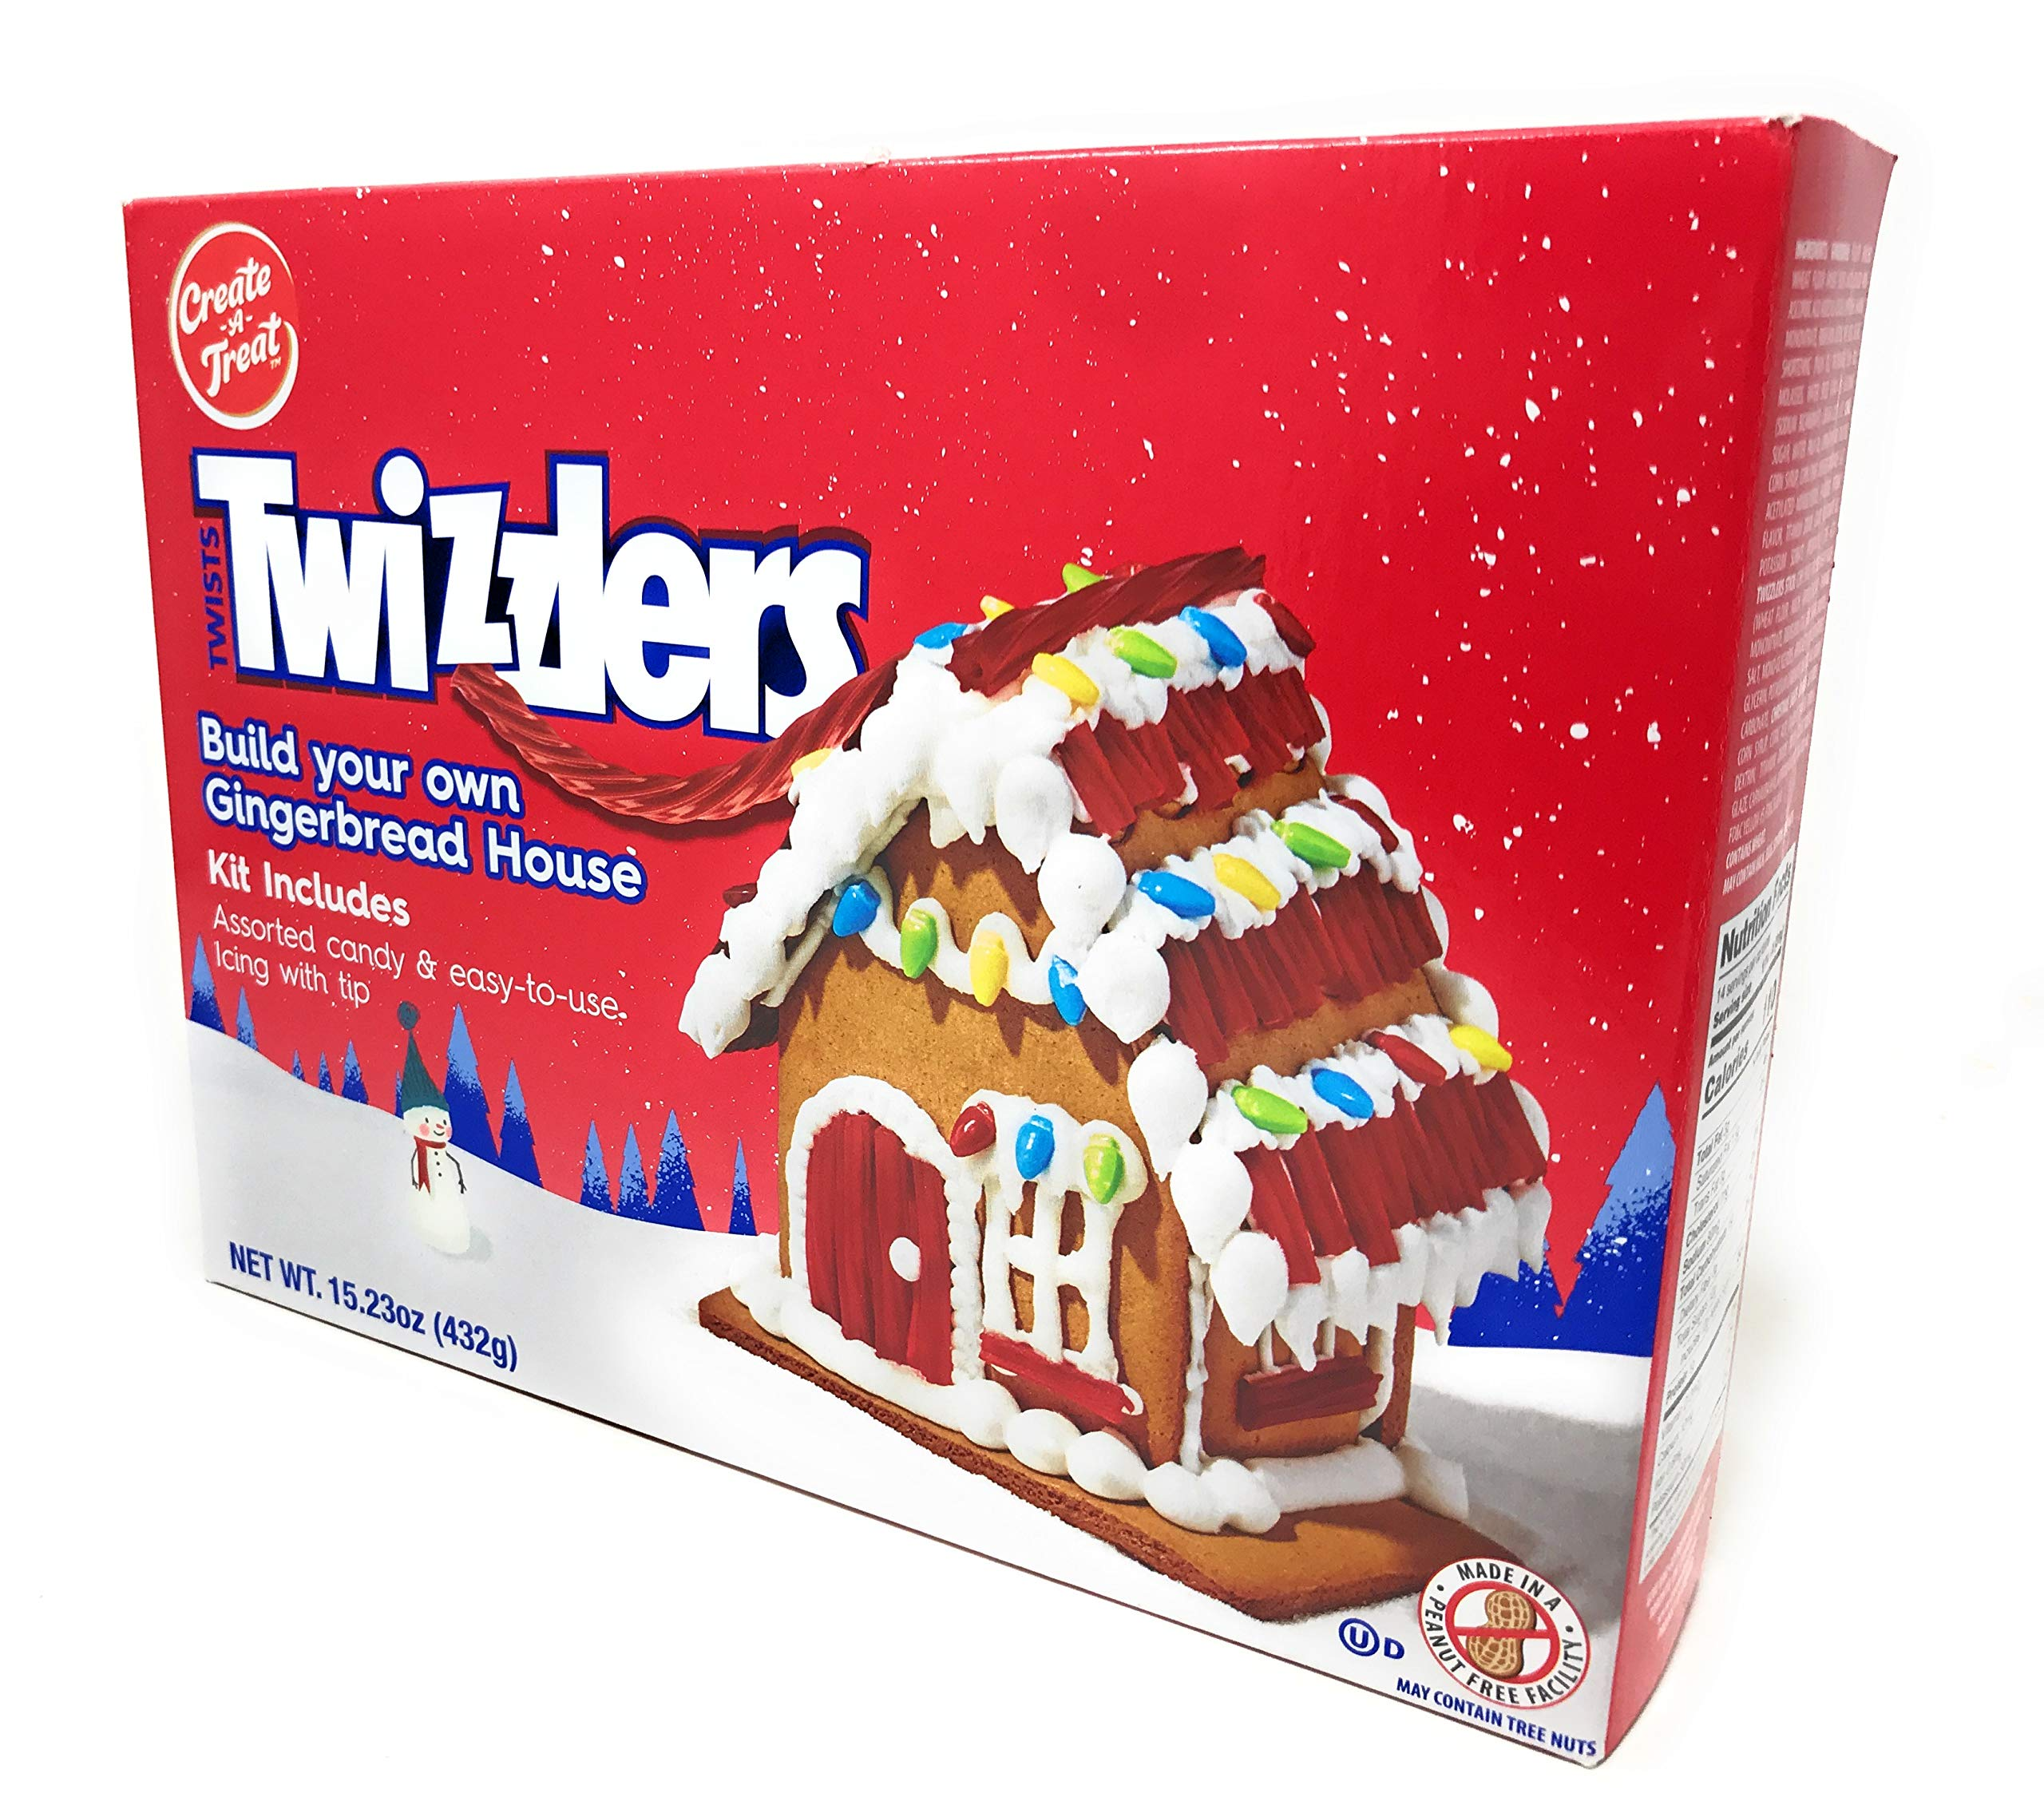 Create-A-Treat E-Z Twizzlers Gingerbread House Kit, 15.23 oz.